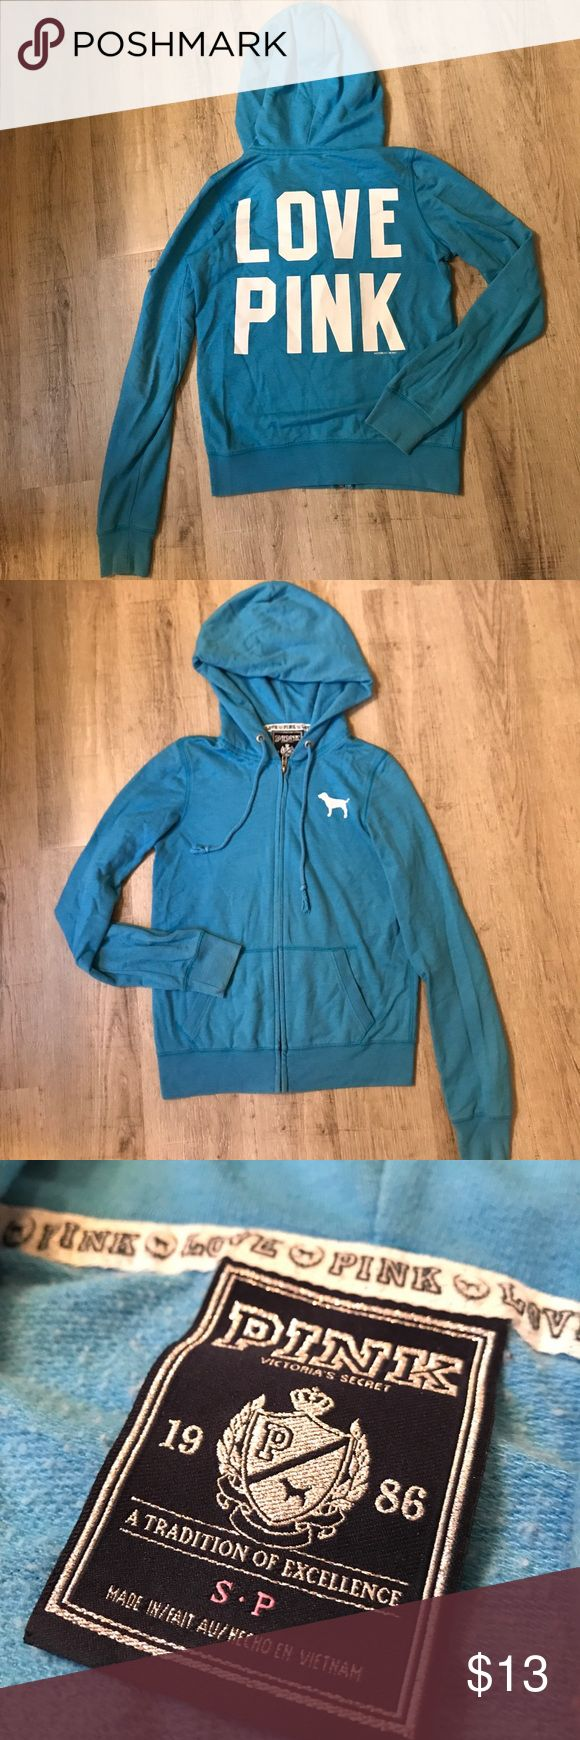 PINK Victoria's Secret blue zip up, small Light weight PINK by Victoria's Secret blue hooded zip up. White PINK dog logo on upper chest with LOVE PINK white lettering across the back. Size small. Comes from a smoke free home. PINK Victoria's Secret Sweaters Cardigans